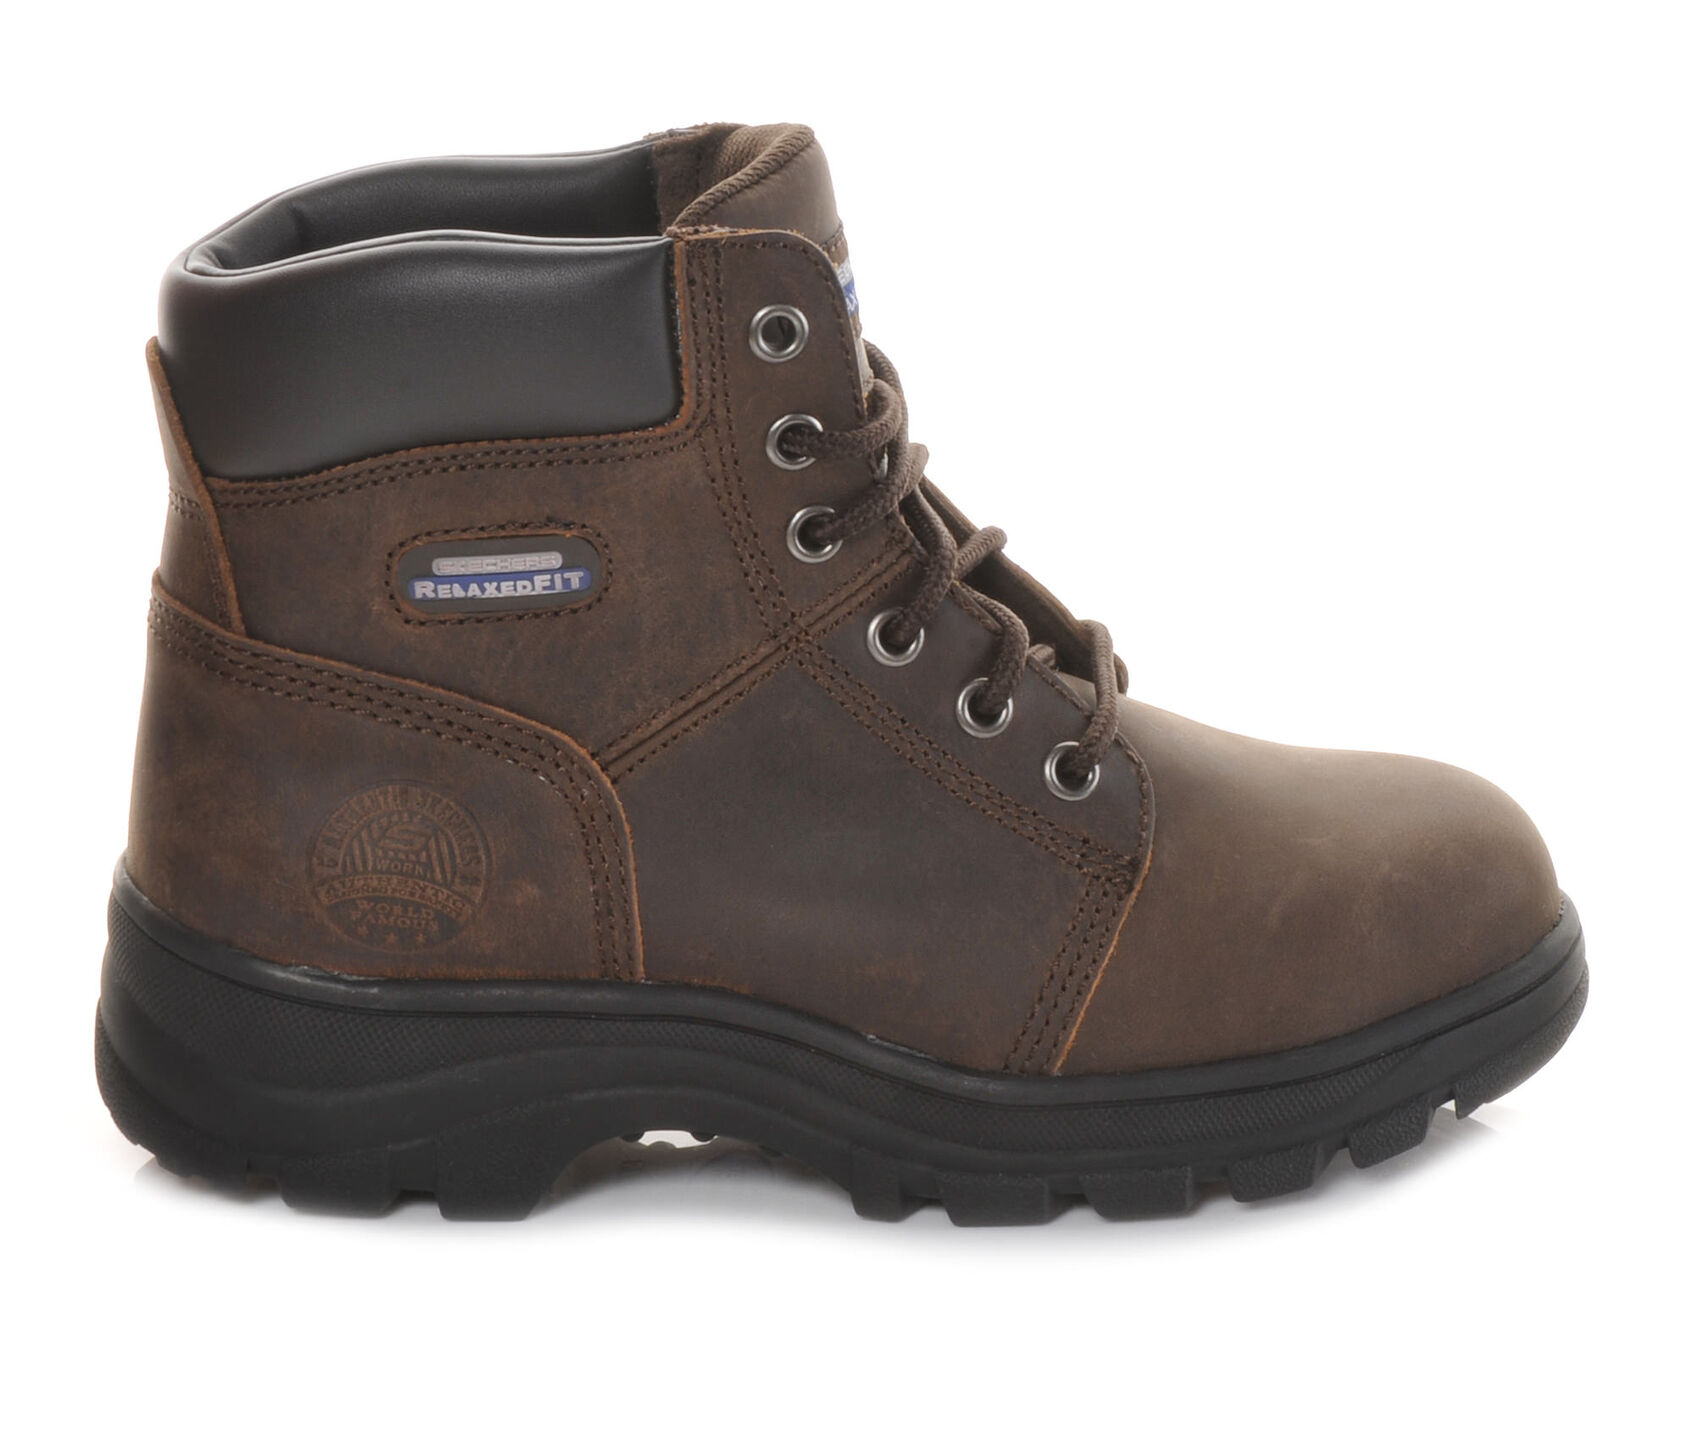 most zip up gator shoes on badger polar toe product comforter safety steel australia comfortable boot side freezer lace